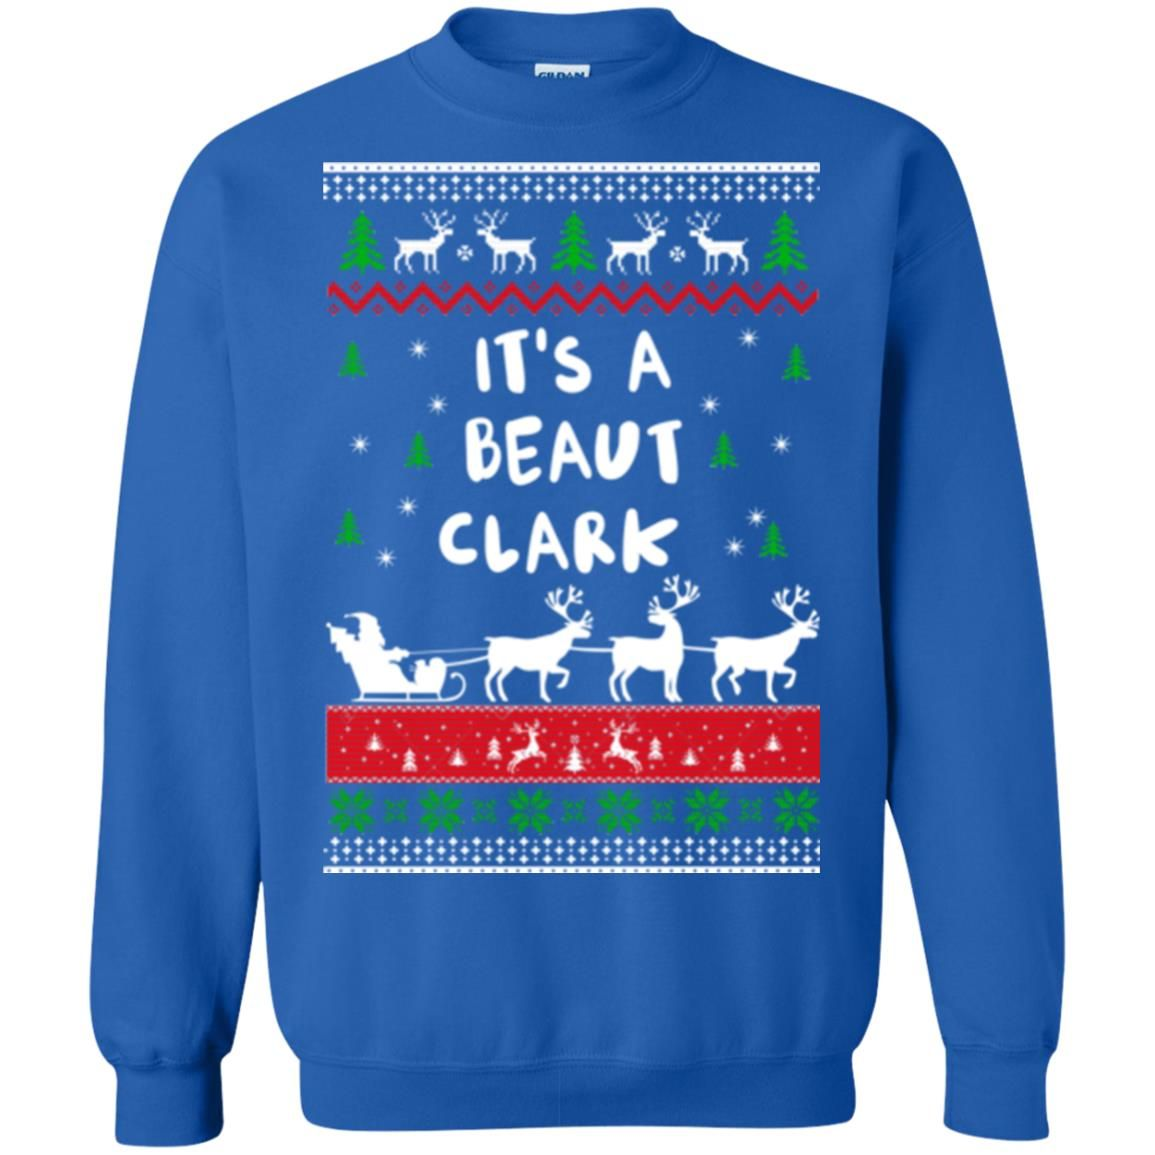 image 1787 - Griswold Sweatshirt It's-a Beaut Clark ugly sweater, hoodie